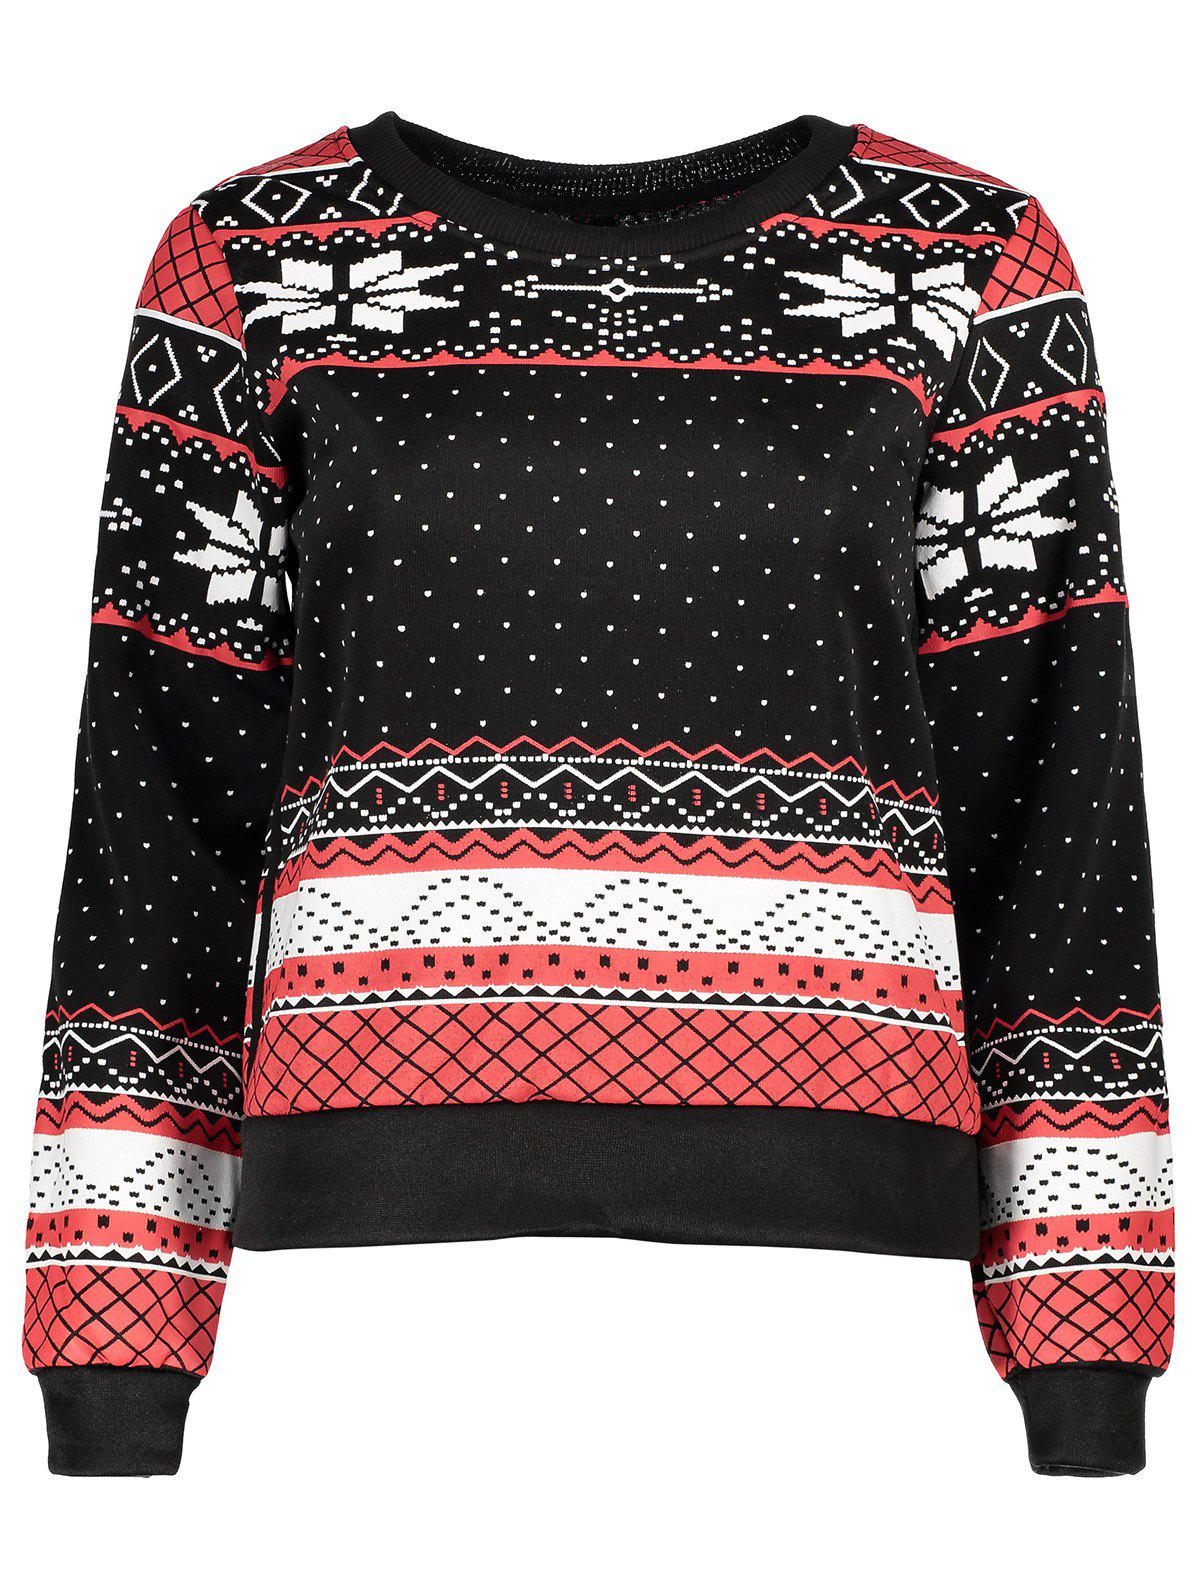 Stylish Round Collar Ethnic Snowflakes Print Thicken Long Sleeve Sweatshirt For WomenWOMEN<br><br>Size: M; Color: BLACK; Material: Polyester; Shirt Length: Regular; Sleeve Length: Full; Style: Fashion; Pattern Style: Print; Weight: 0.199kg; Package Contents: 1 x Sweatshirt;